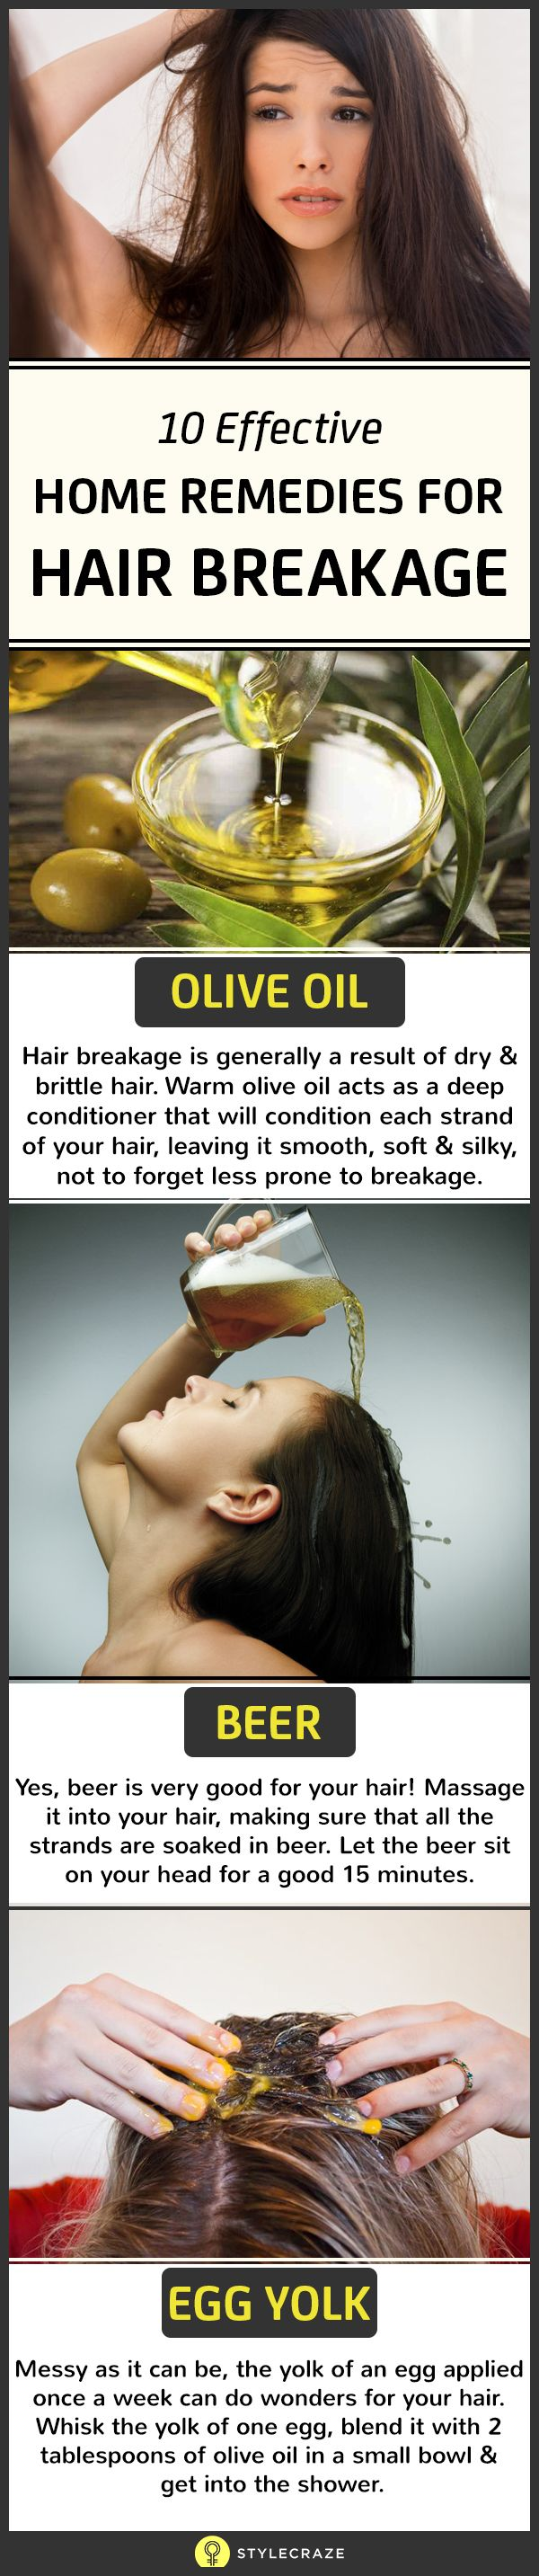 Hair breakage is perhaps one of the most common problems that plague men and women alike. People are often found discussing their hair fall woes! Many spend time and money on hair experts, in the hope of a cure. What most don't know is that there are several home remedies and tips that do work miracles.